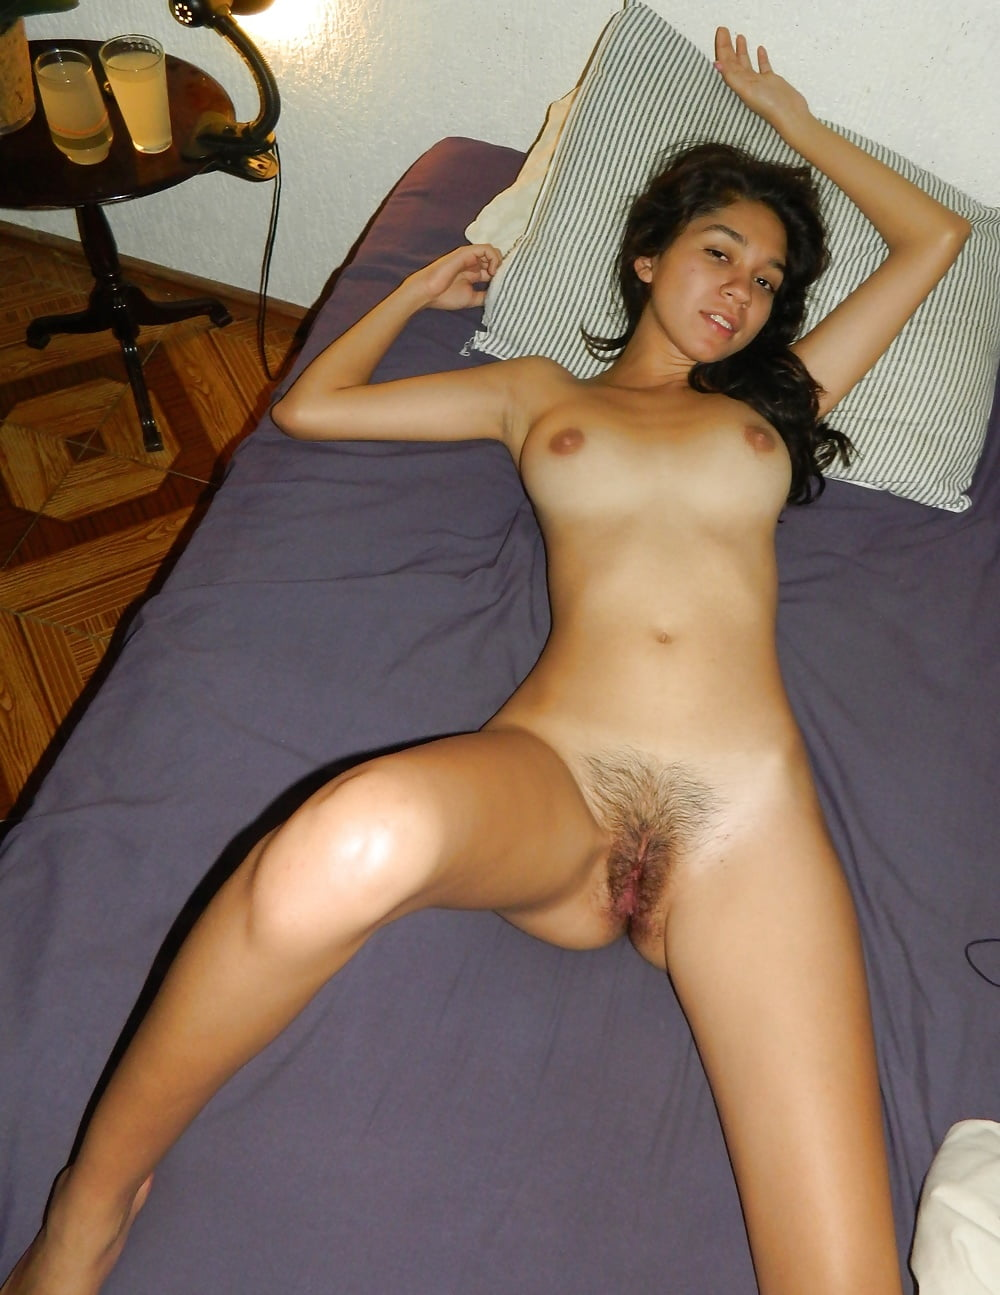 wife-mexicano-nude-pakistani-virigine-girl-sex